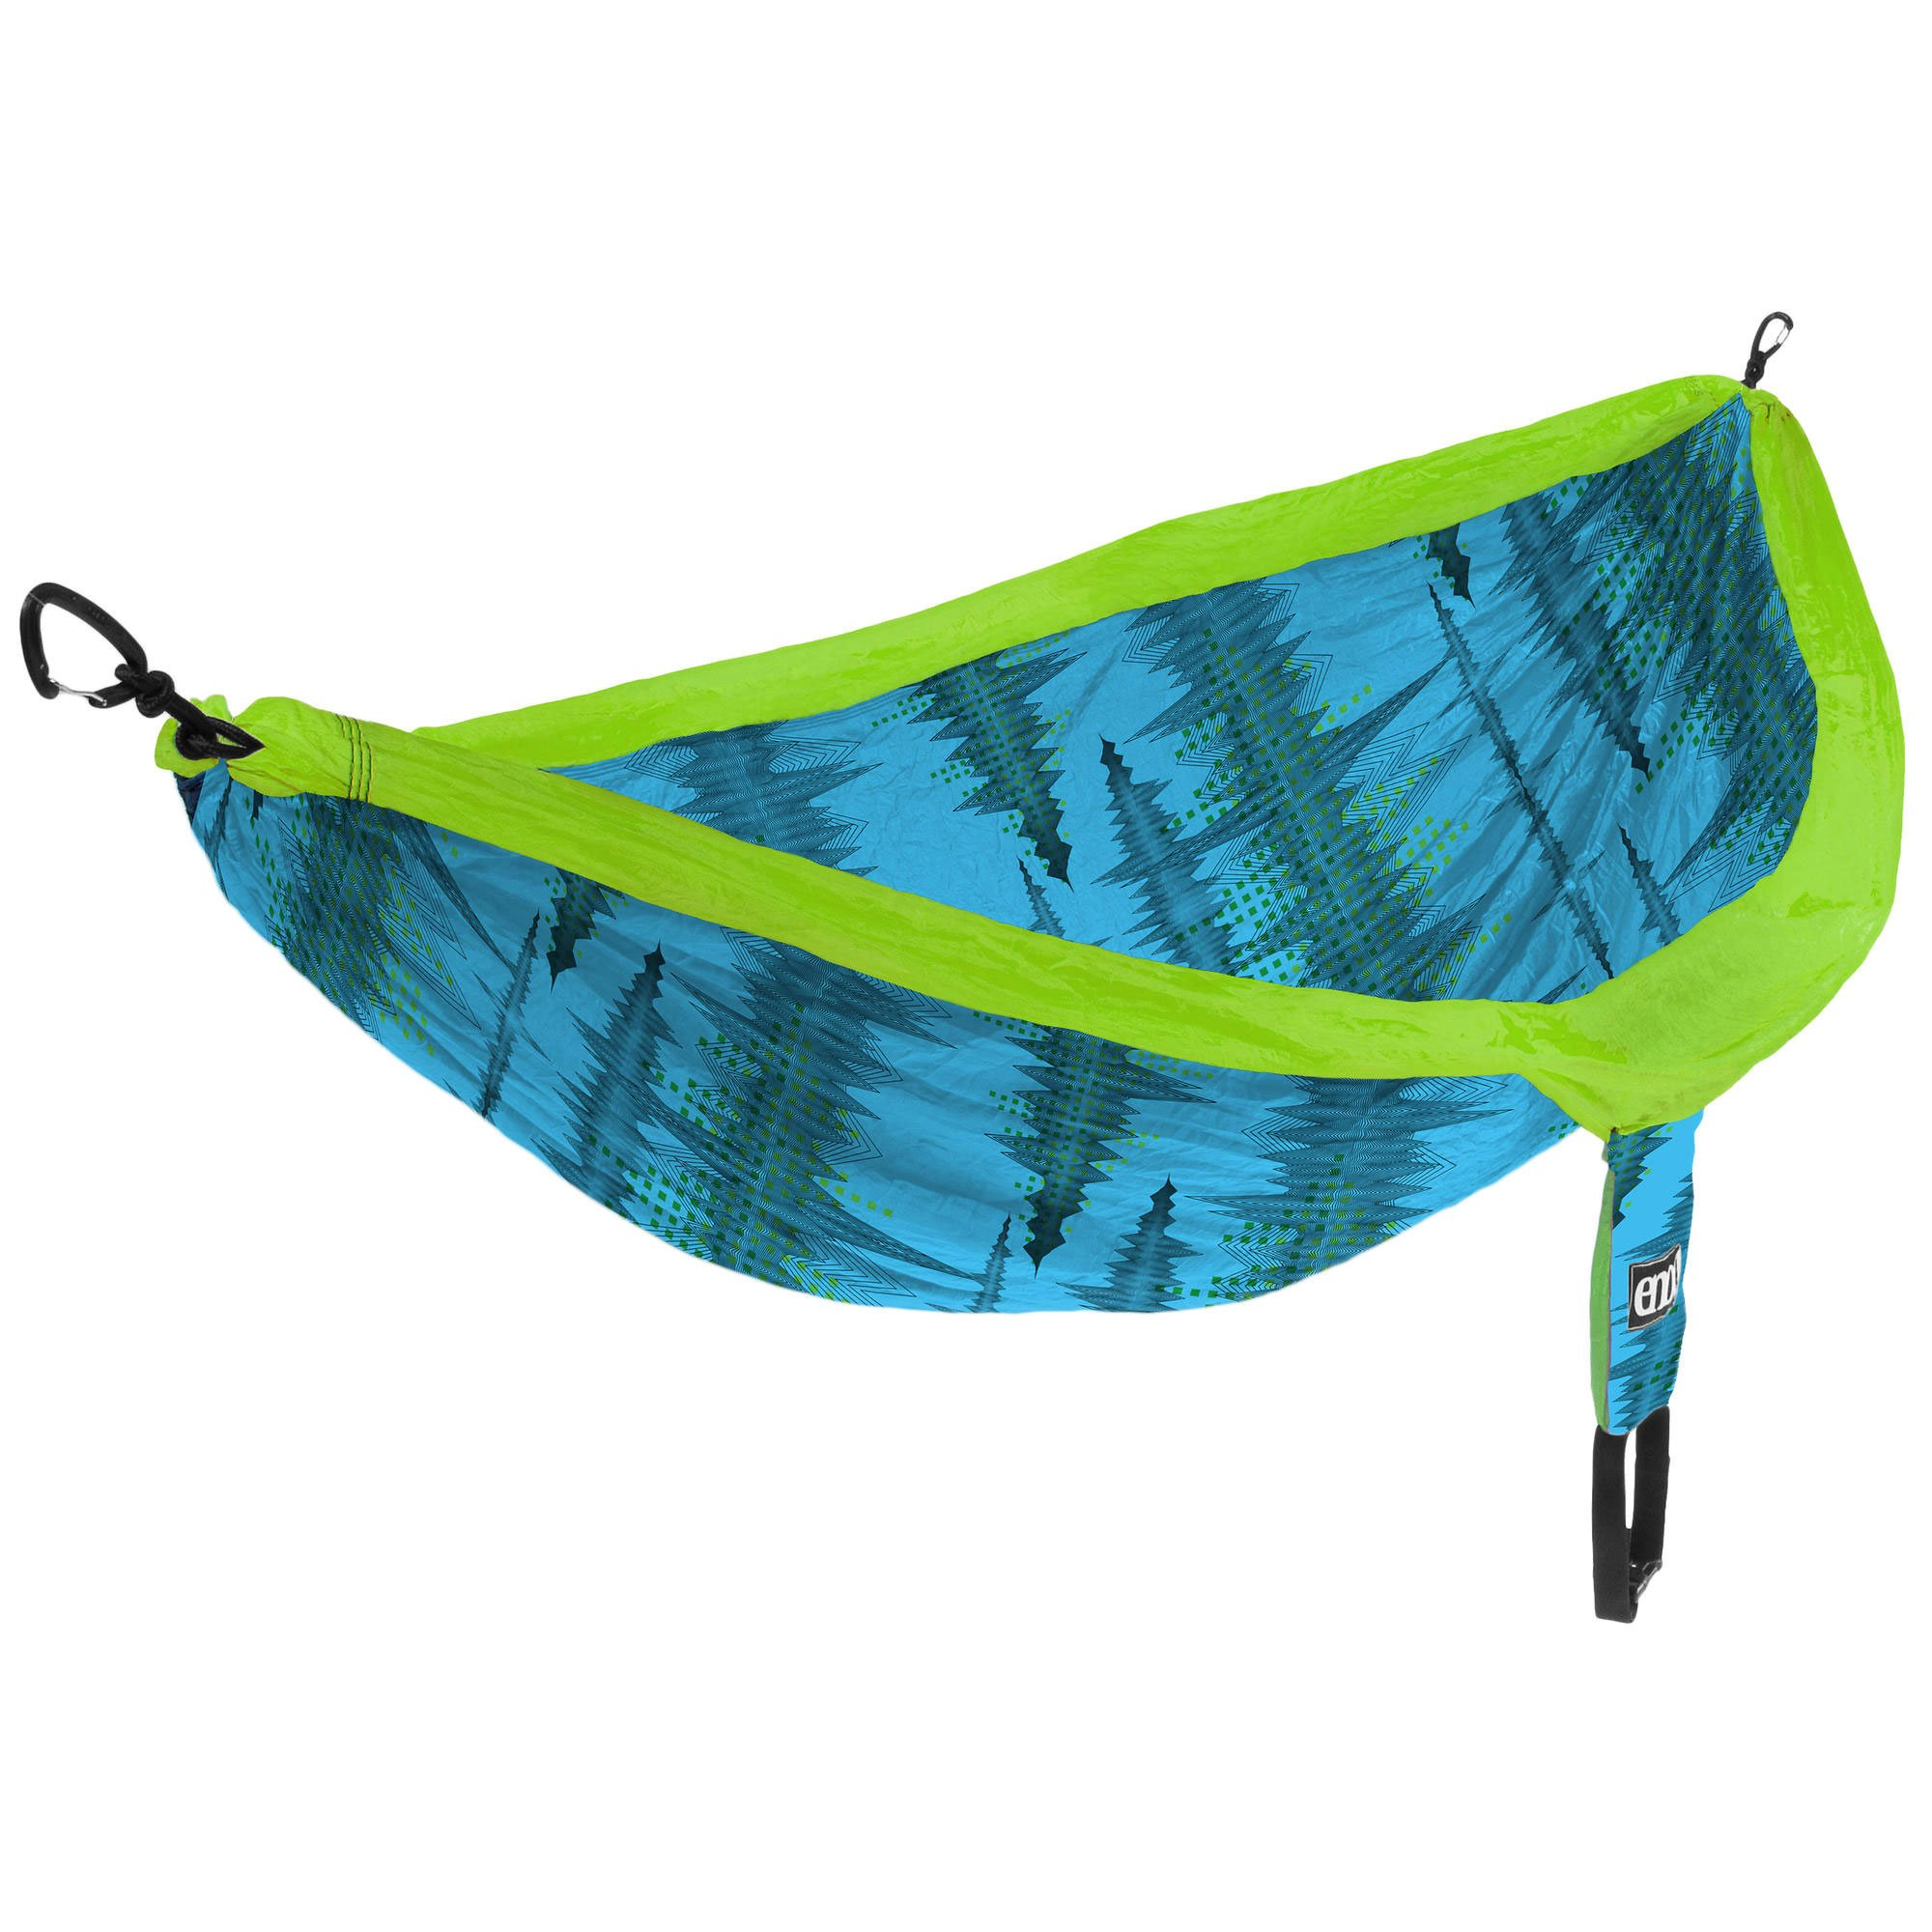 ENO - Eagles Nest Outfitters DoubleNest Print Portable Hammock for Two, Soundwave/Aqua